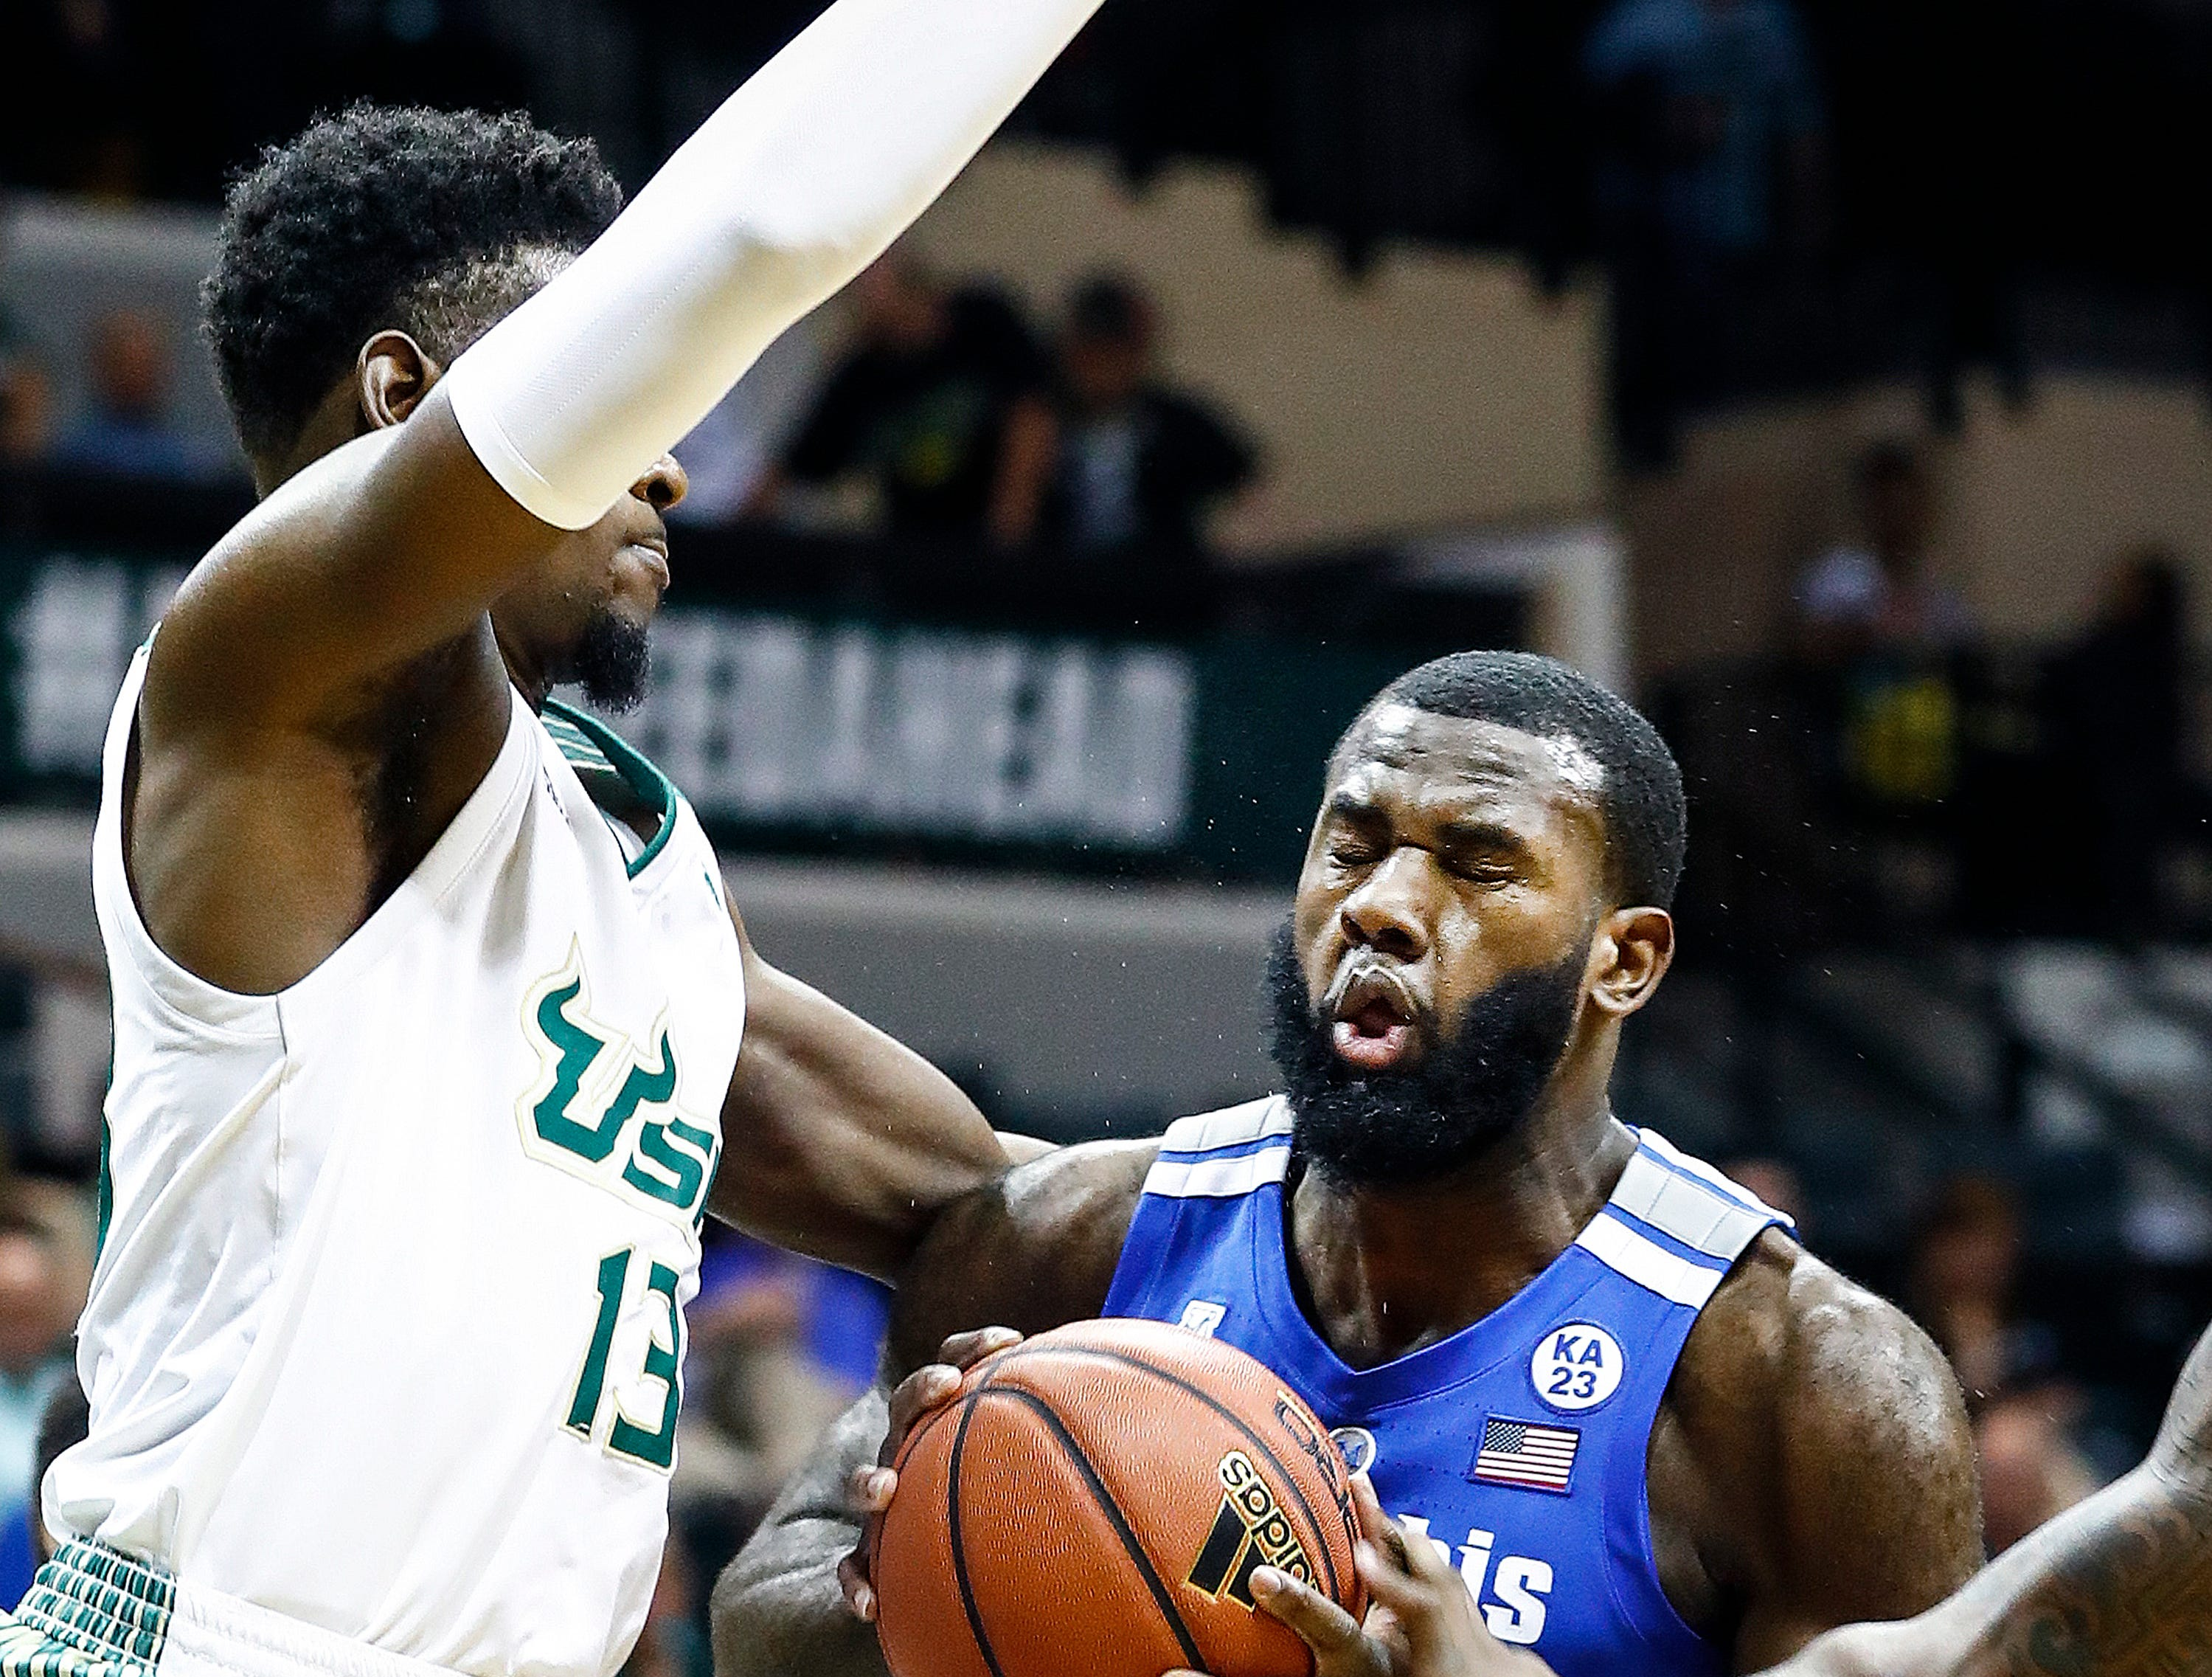 Memphis forward Raynere Thornton (right) is fouled while driving the lane against USF defender Justin Brown (left) during action in Tampa, Saturday, February 2, 2019.